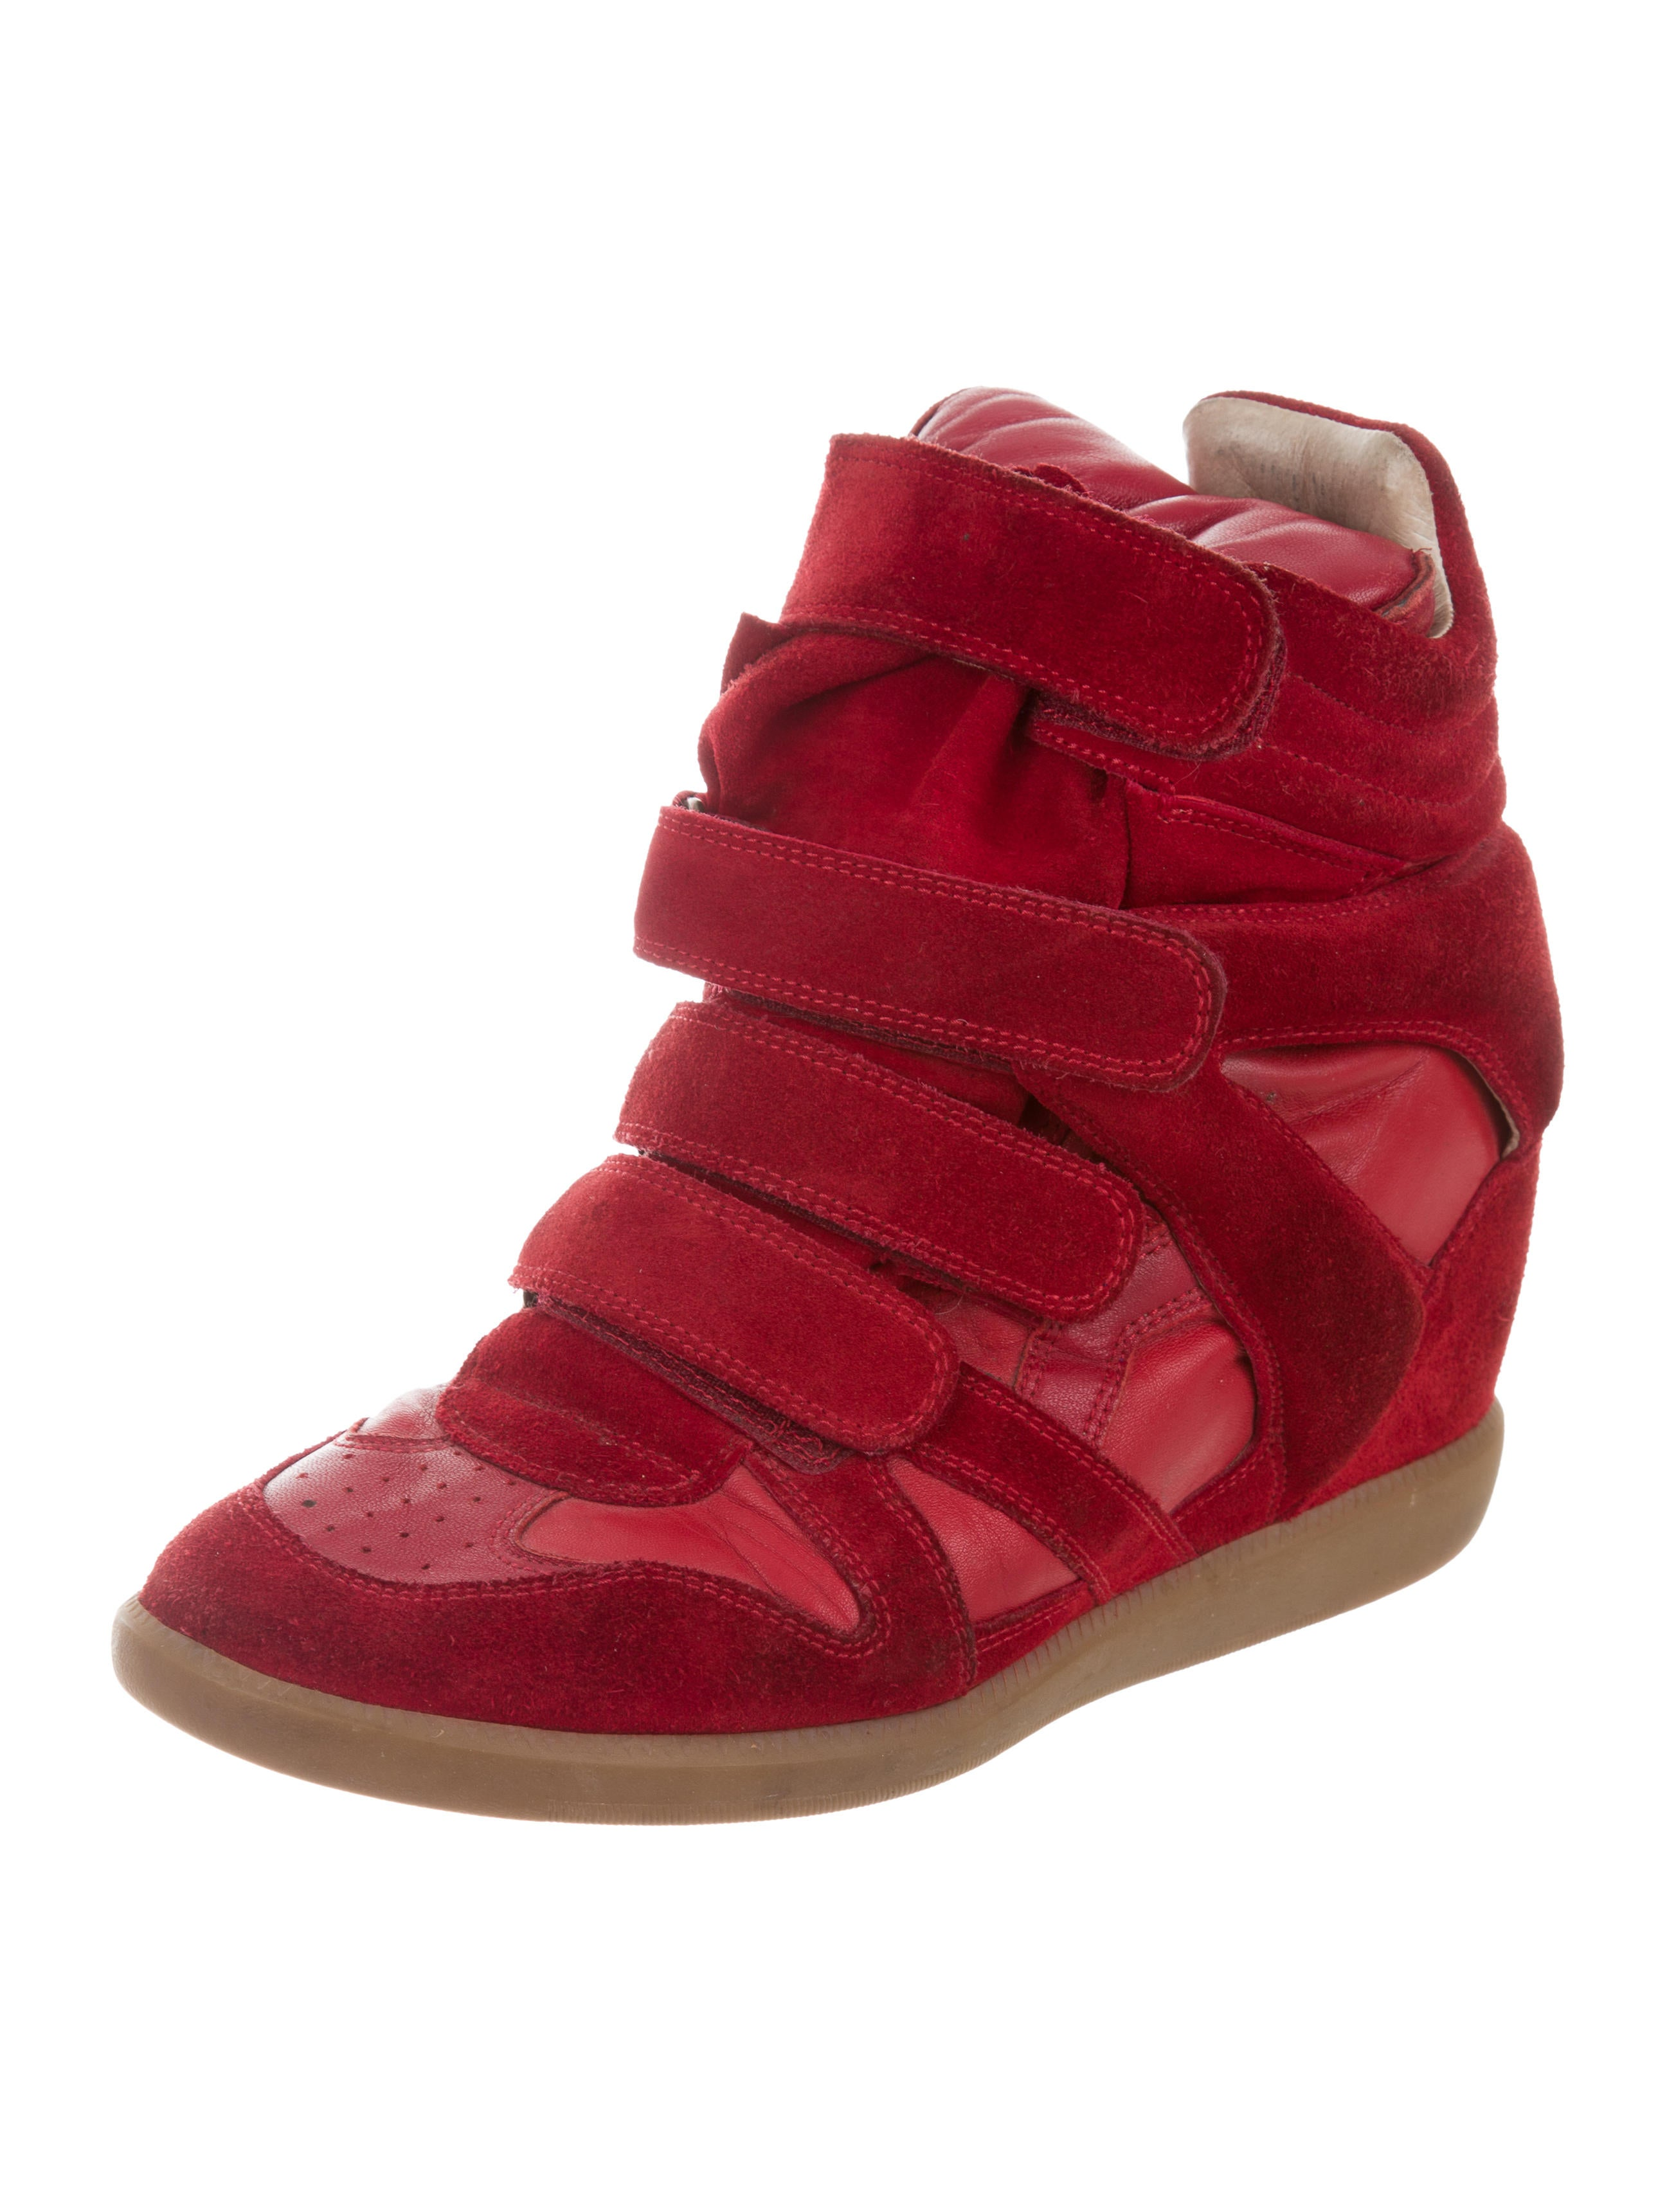 isabel marant beckett wedge sneakers shoes isa45529 the realreal. Black Bedroom Furniture Sets. Home Design Ideas